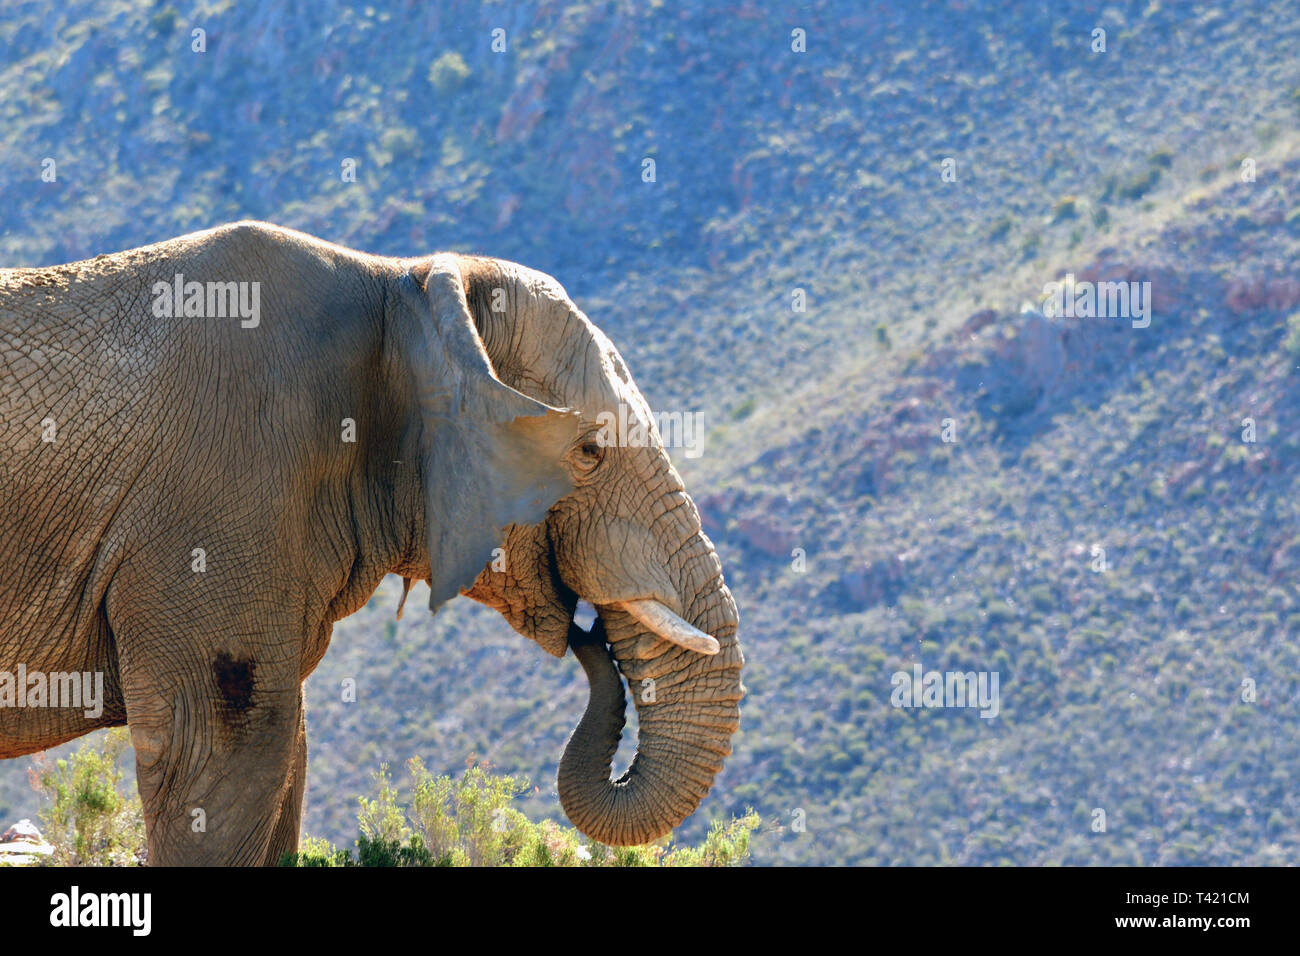 African Elephants in the wild Stock Photo